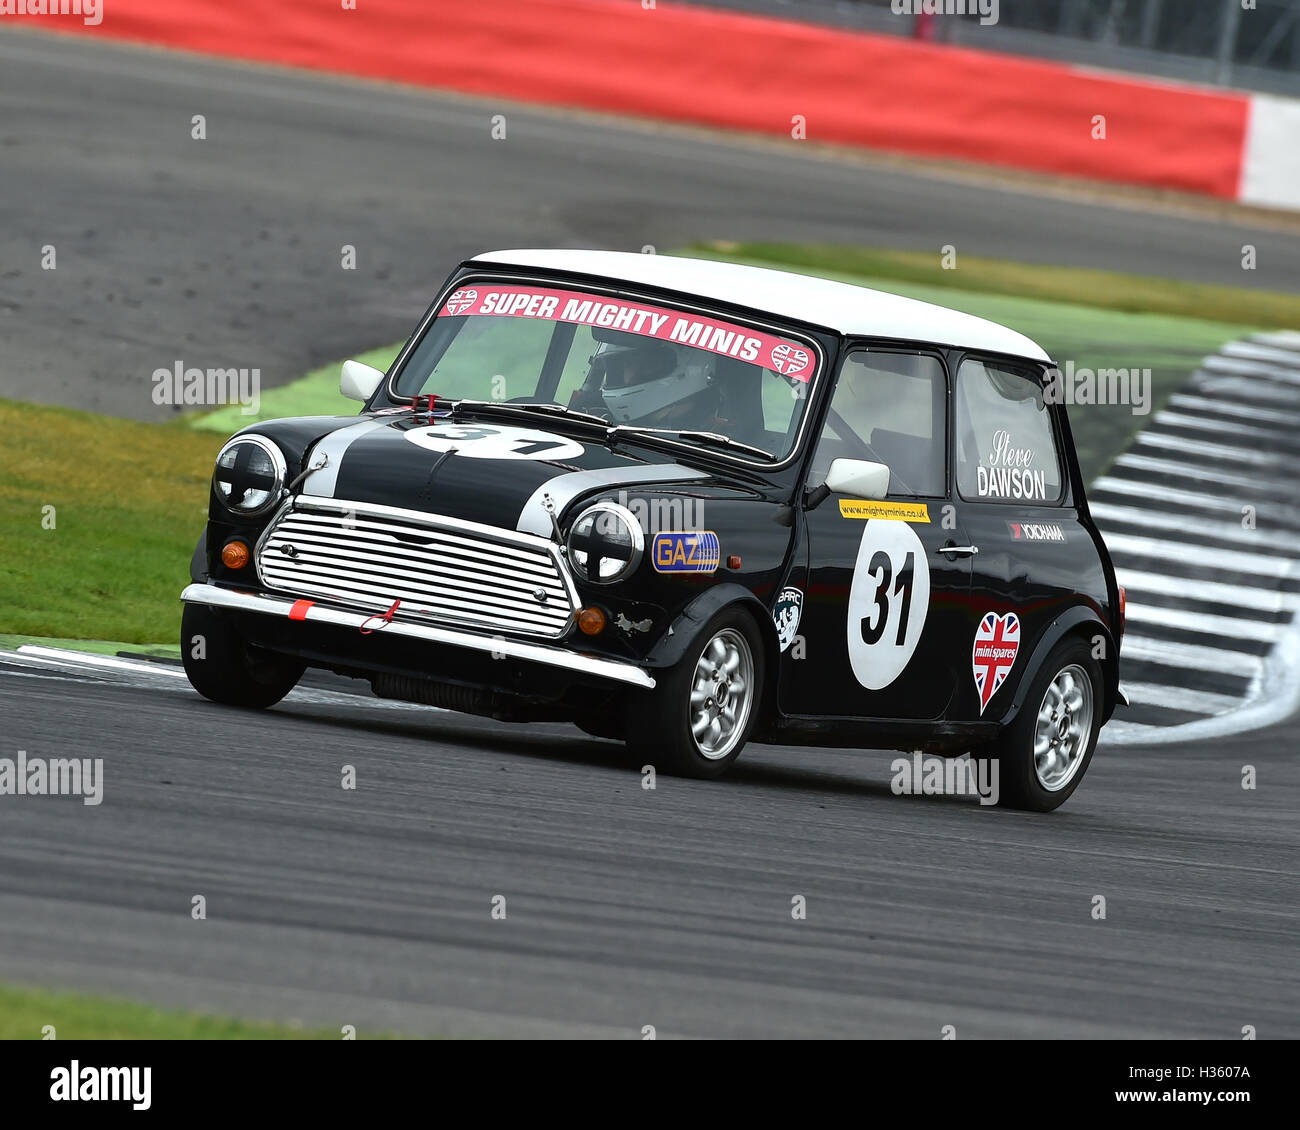 Steven Dawson, Super Mighty Mini, 1293, Mighty Mini Championship, Saturday, Silverstone, Silverstone truck festival, - Stock Image